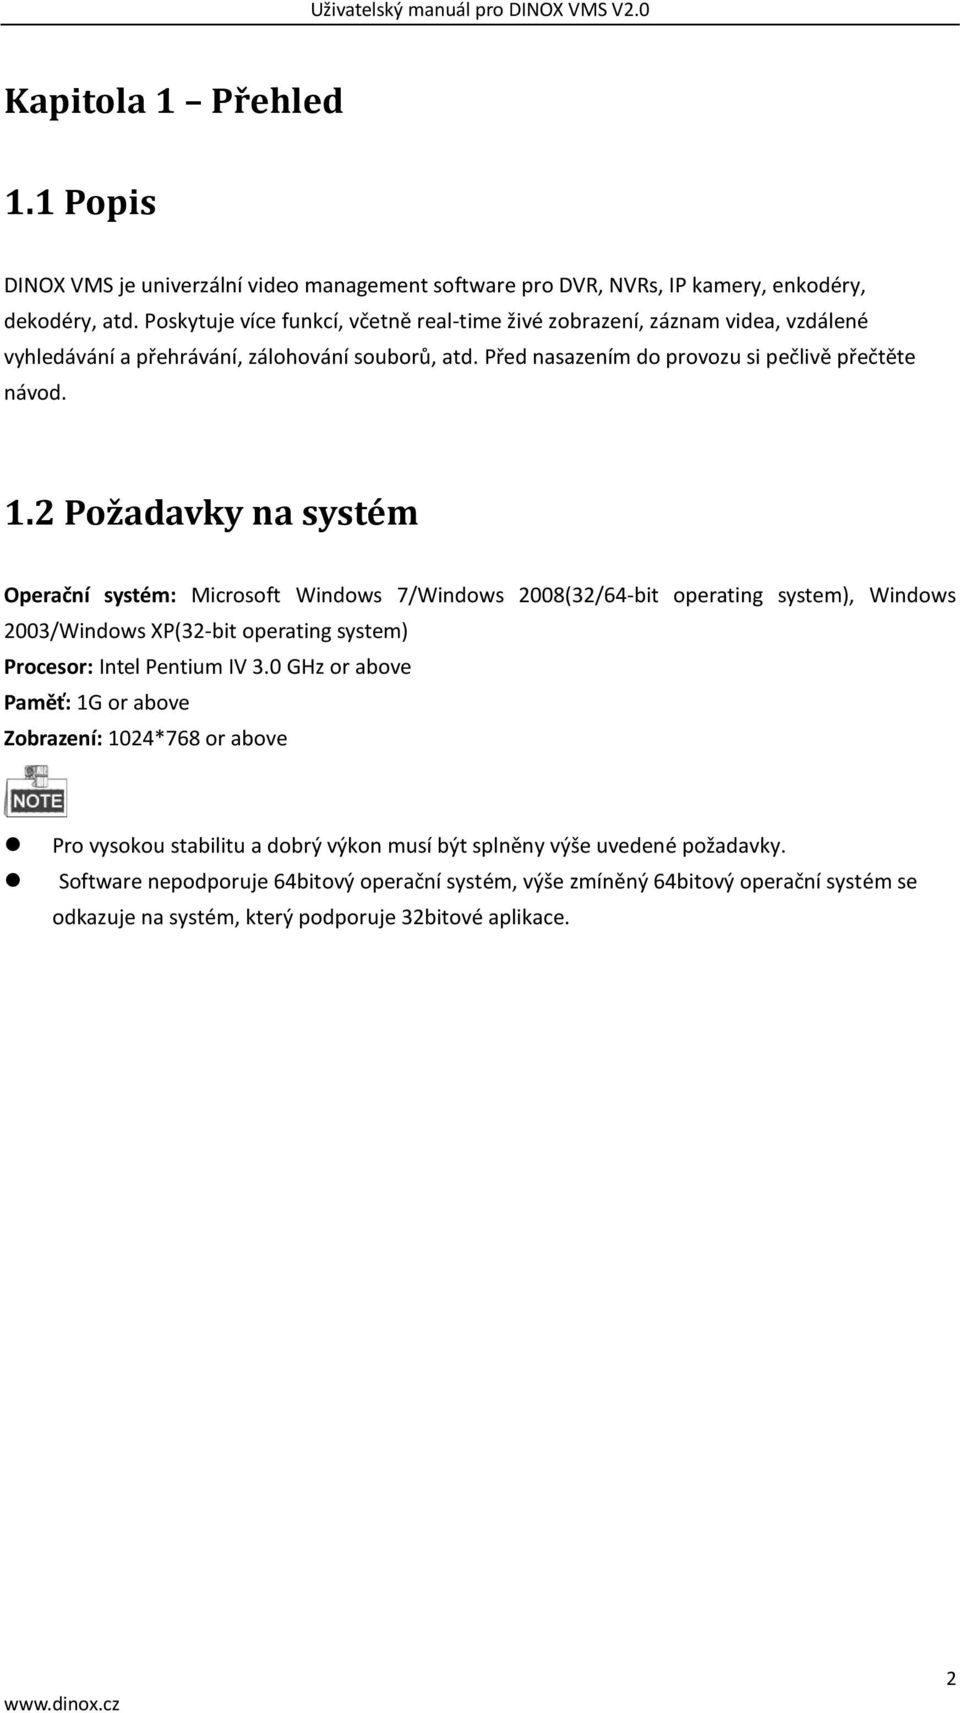 2 Požadavky na systém Operační systém: Microsoft Windows 7/Windows 2008(32/64-bit operating system), Windows 2003/Windows XP(32-bit operating system) Procesor: Intel Pentium IV 3.